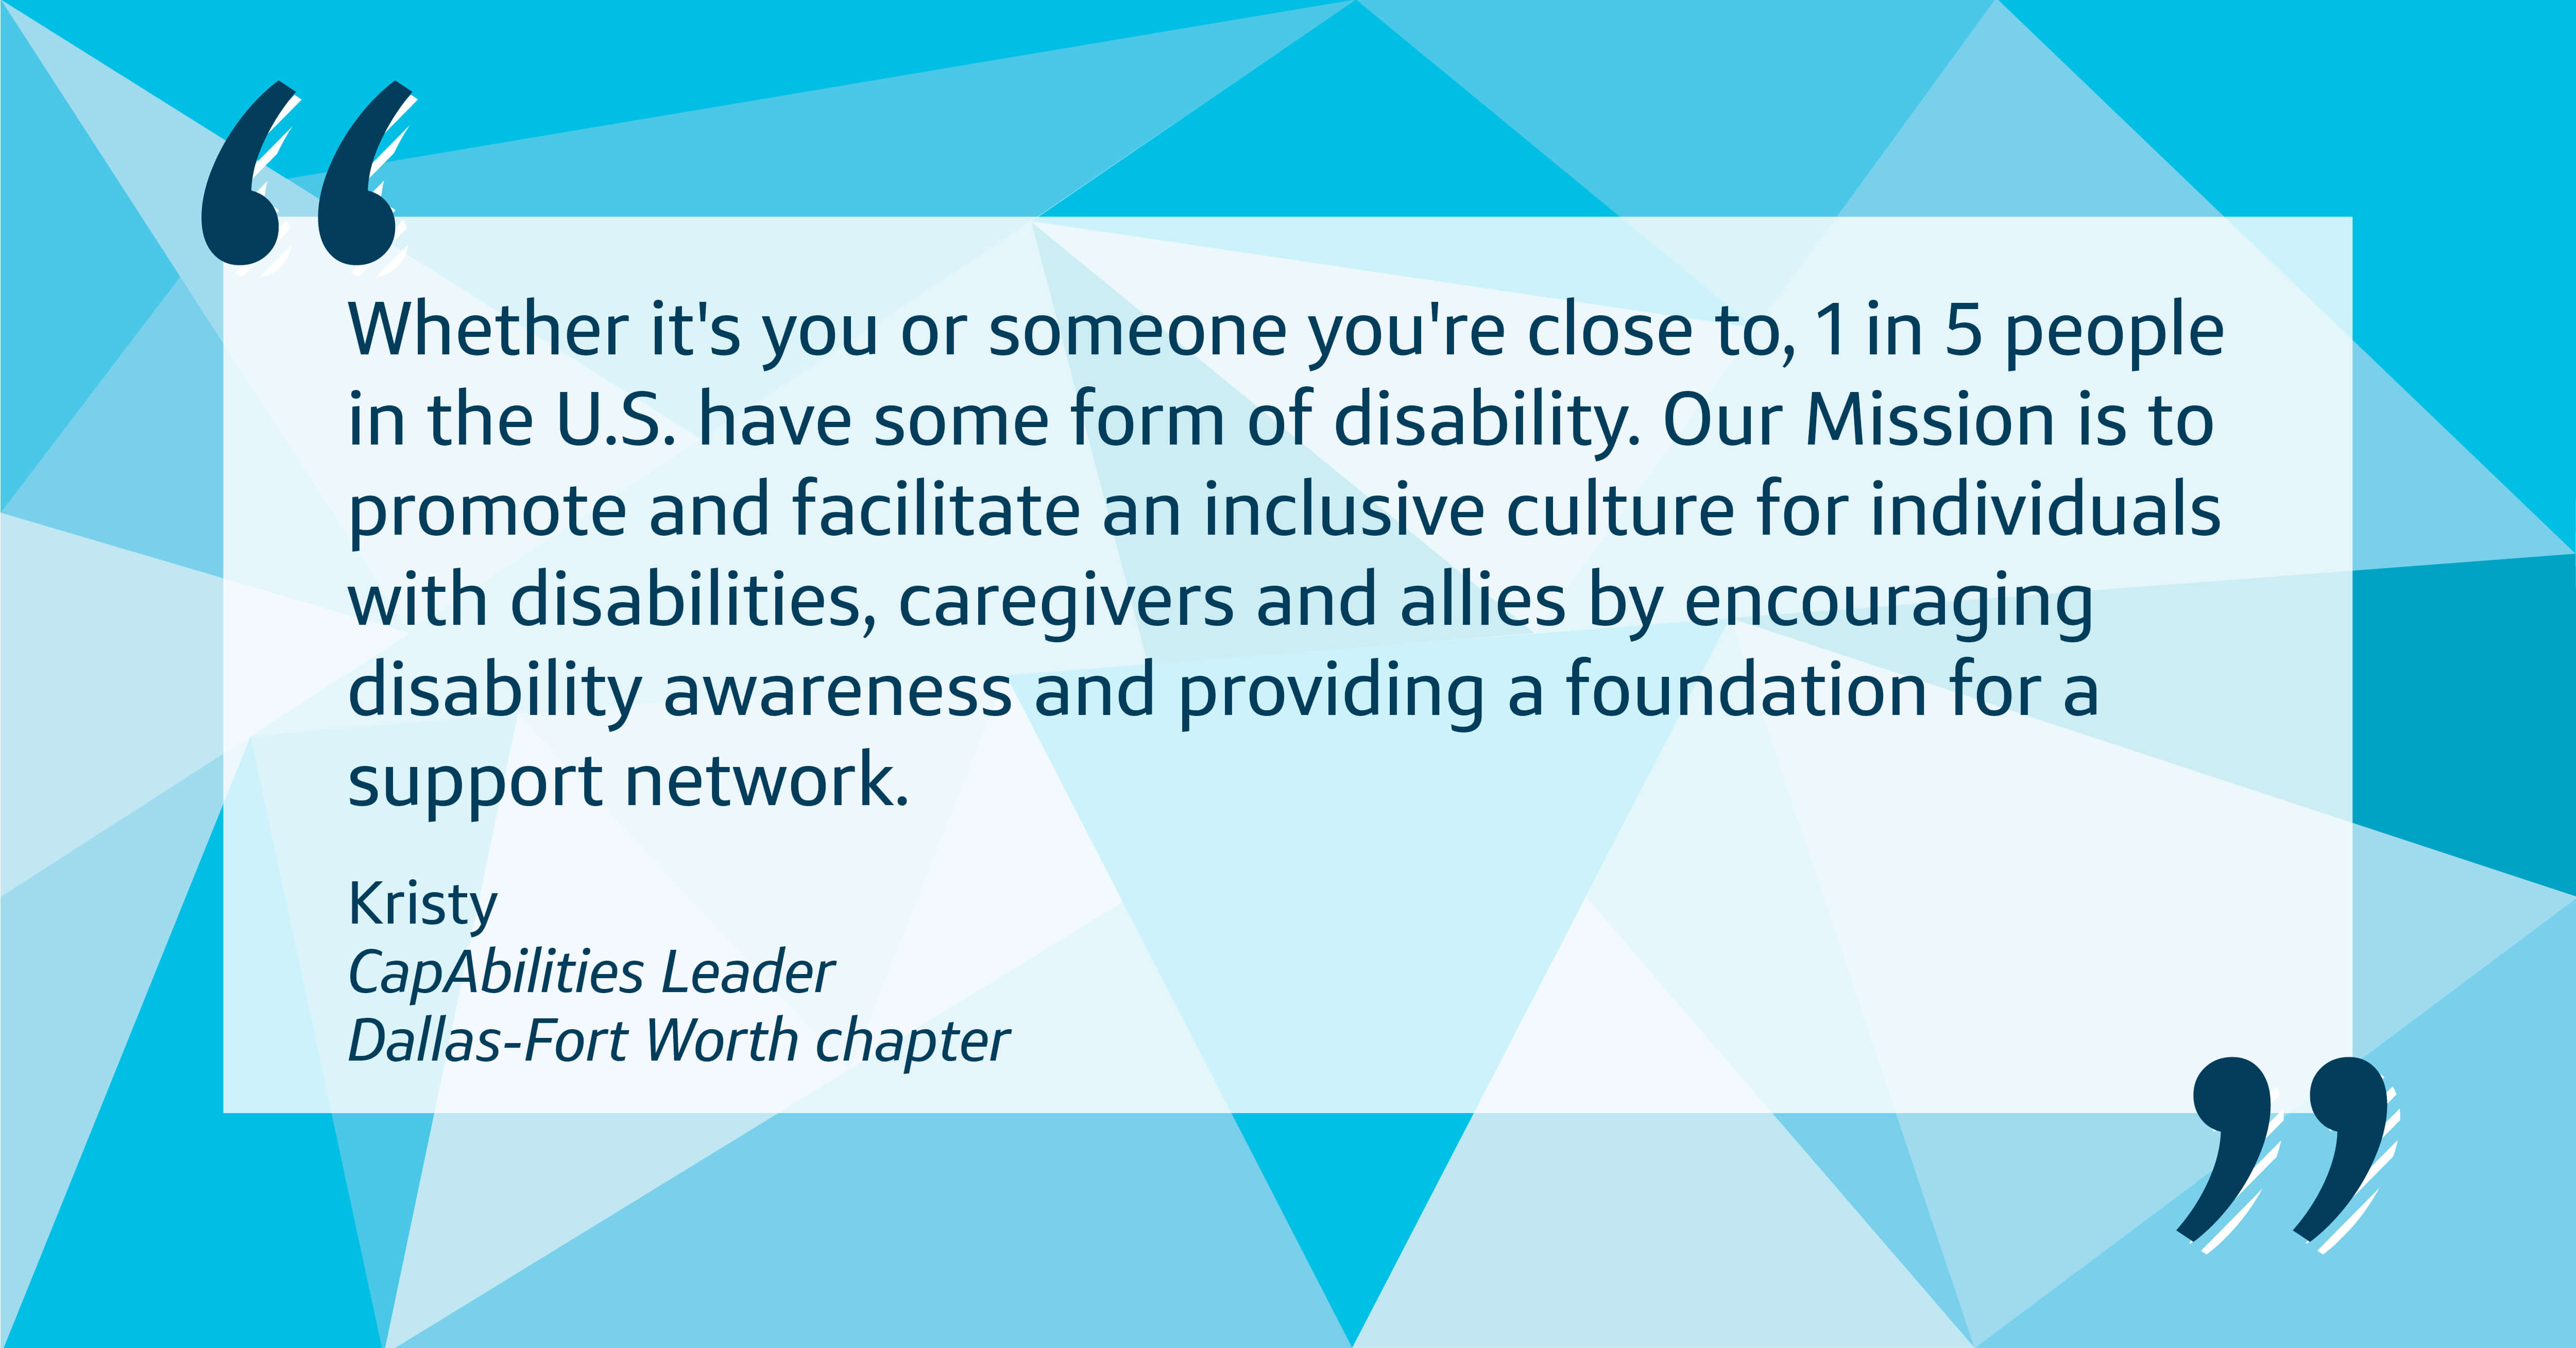 1 in 5 people in the U.S. have some form of disability. Our mission at Capital One is to promote and facilitate an inclusive culture.